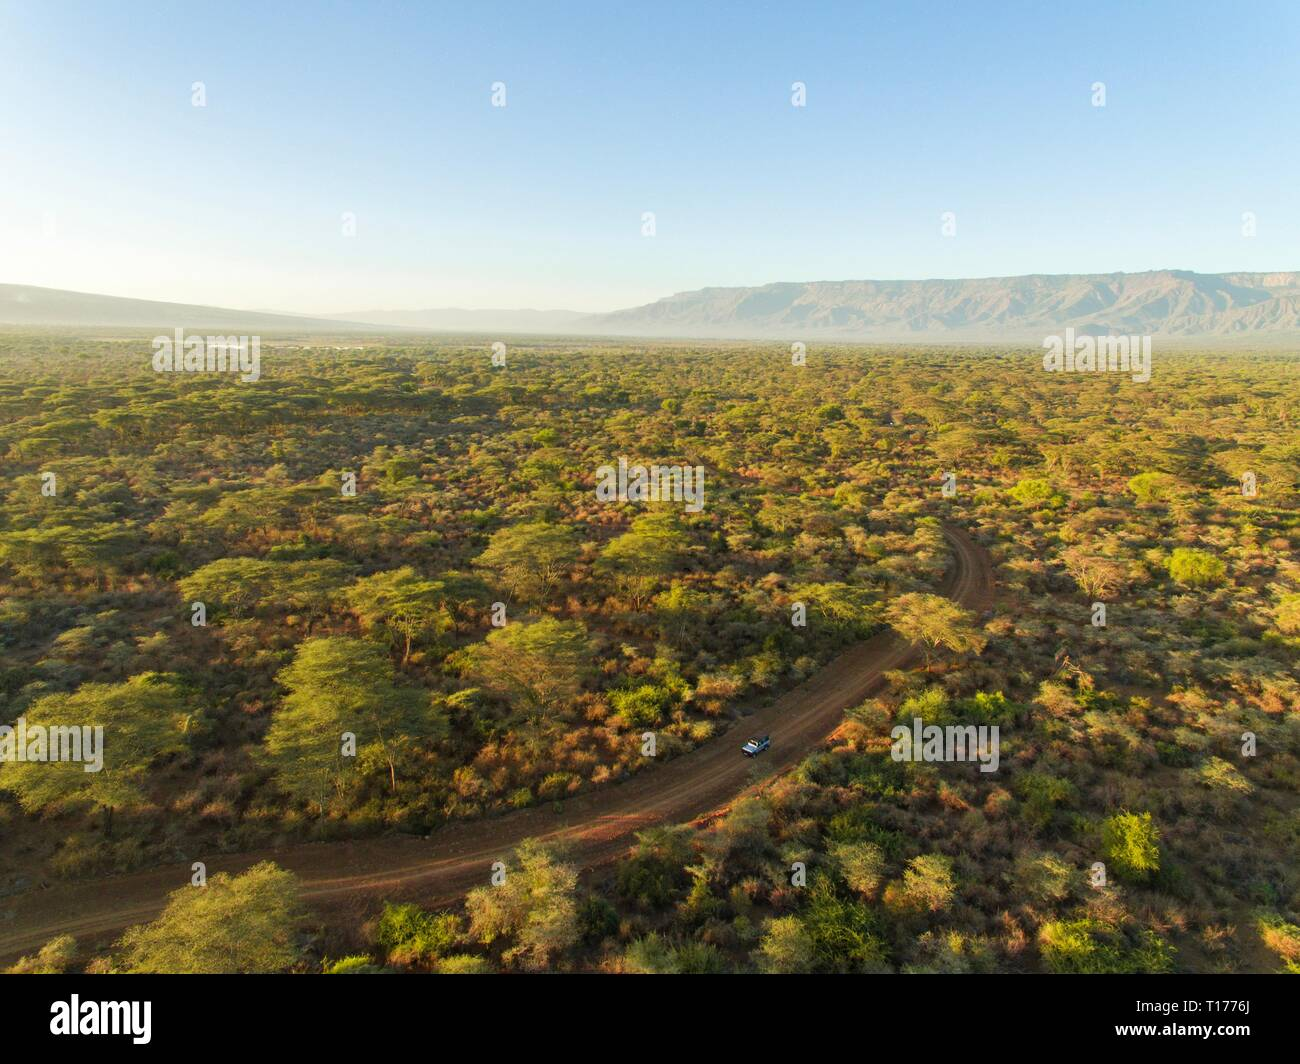 Early morning game drive in Rimoi National Reserve - Stock Image